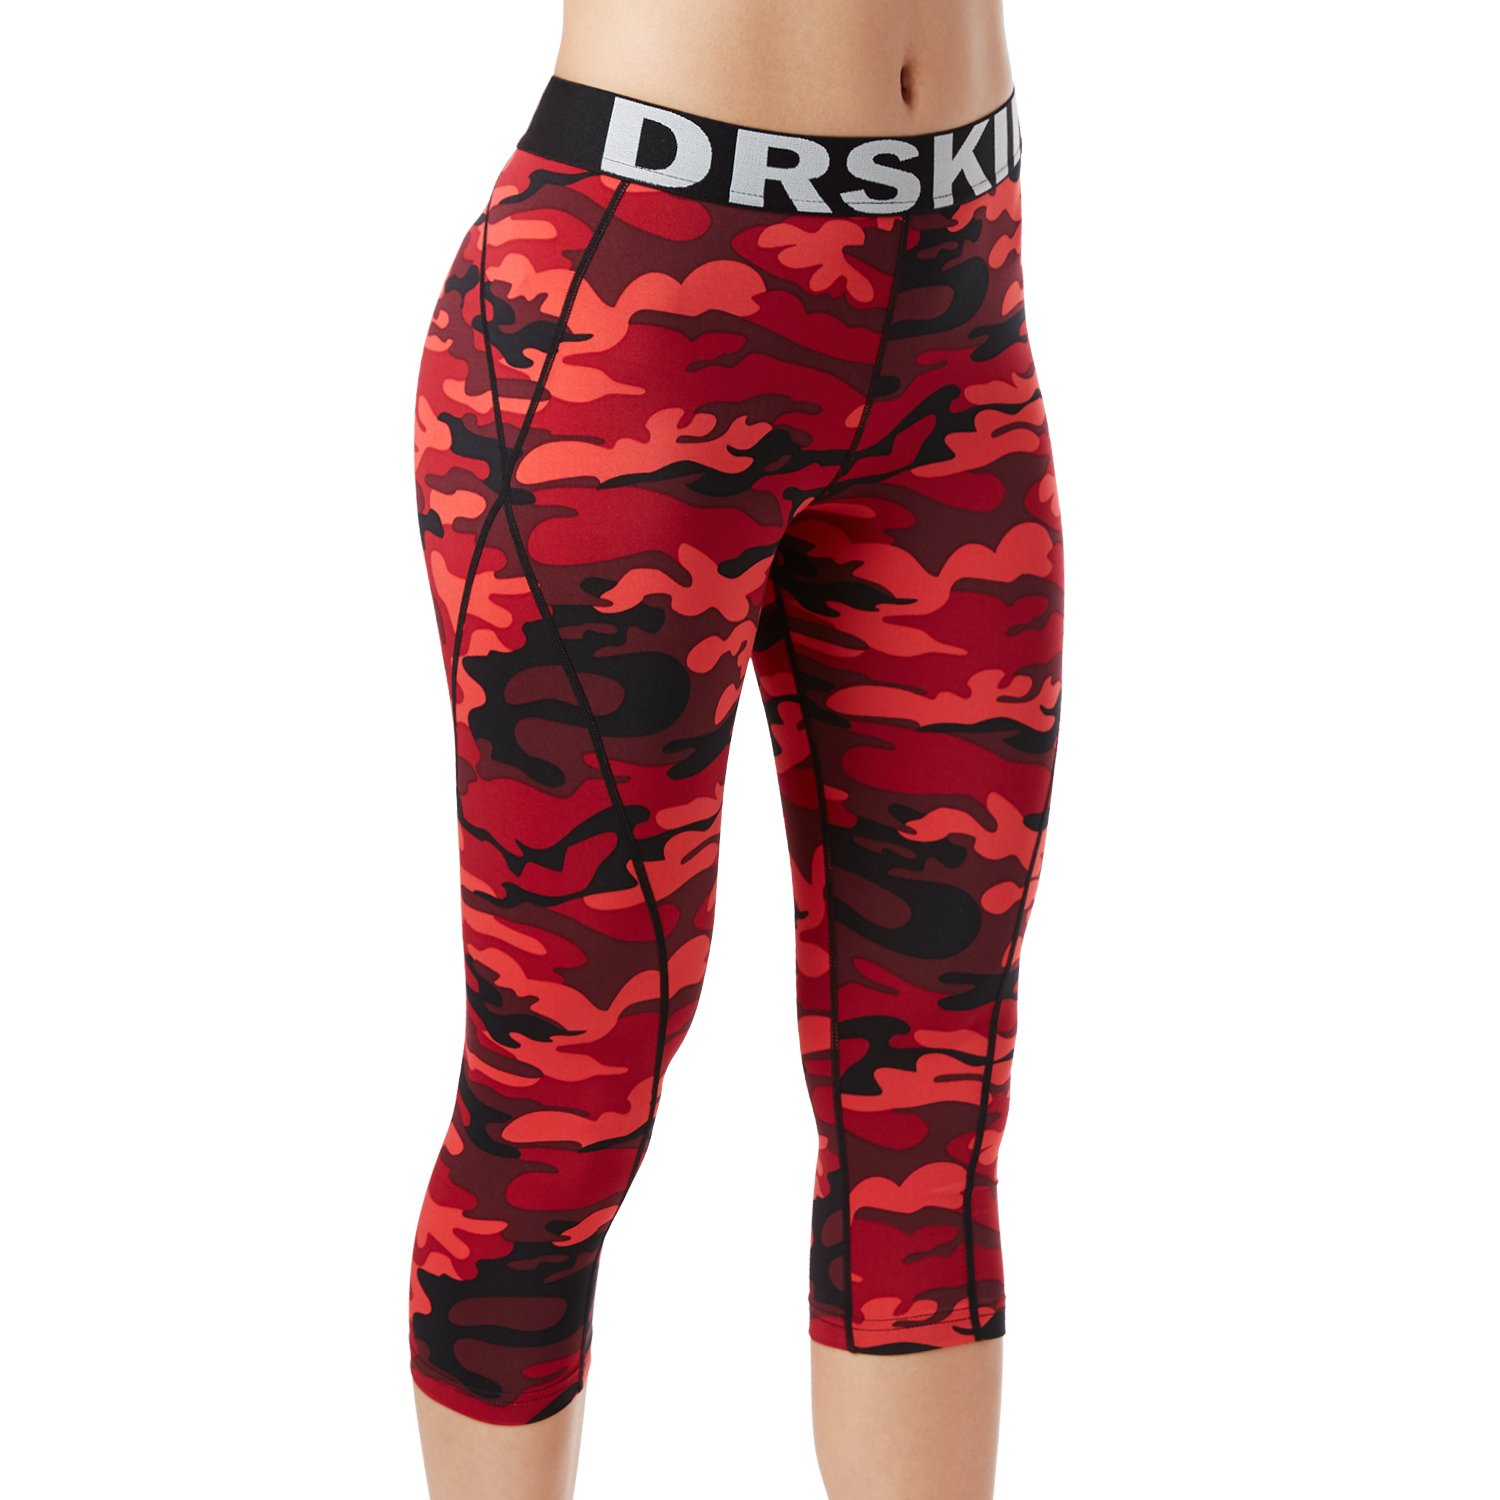 d540691bcee962 DRSKIN Compression Tight Pants Base Layer Running Leggings Women best  Christmas gift